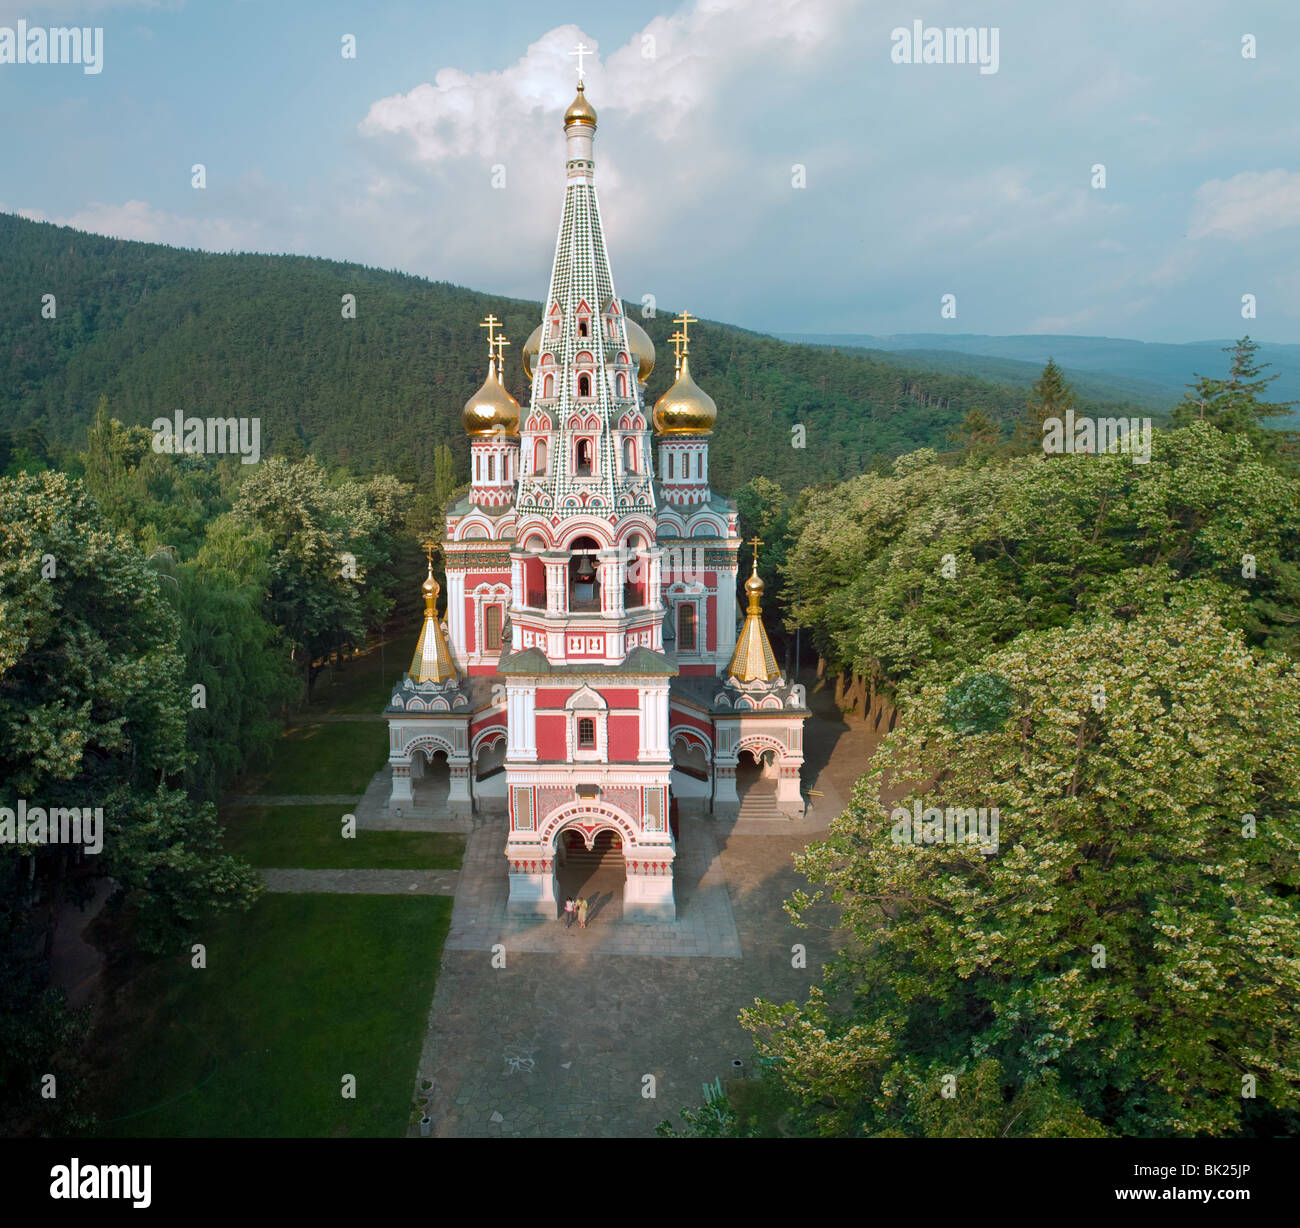 Aerial view of Shipka Monastery in the Balkan Mountains near Kazanlak. - Stock Image